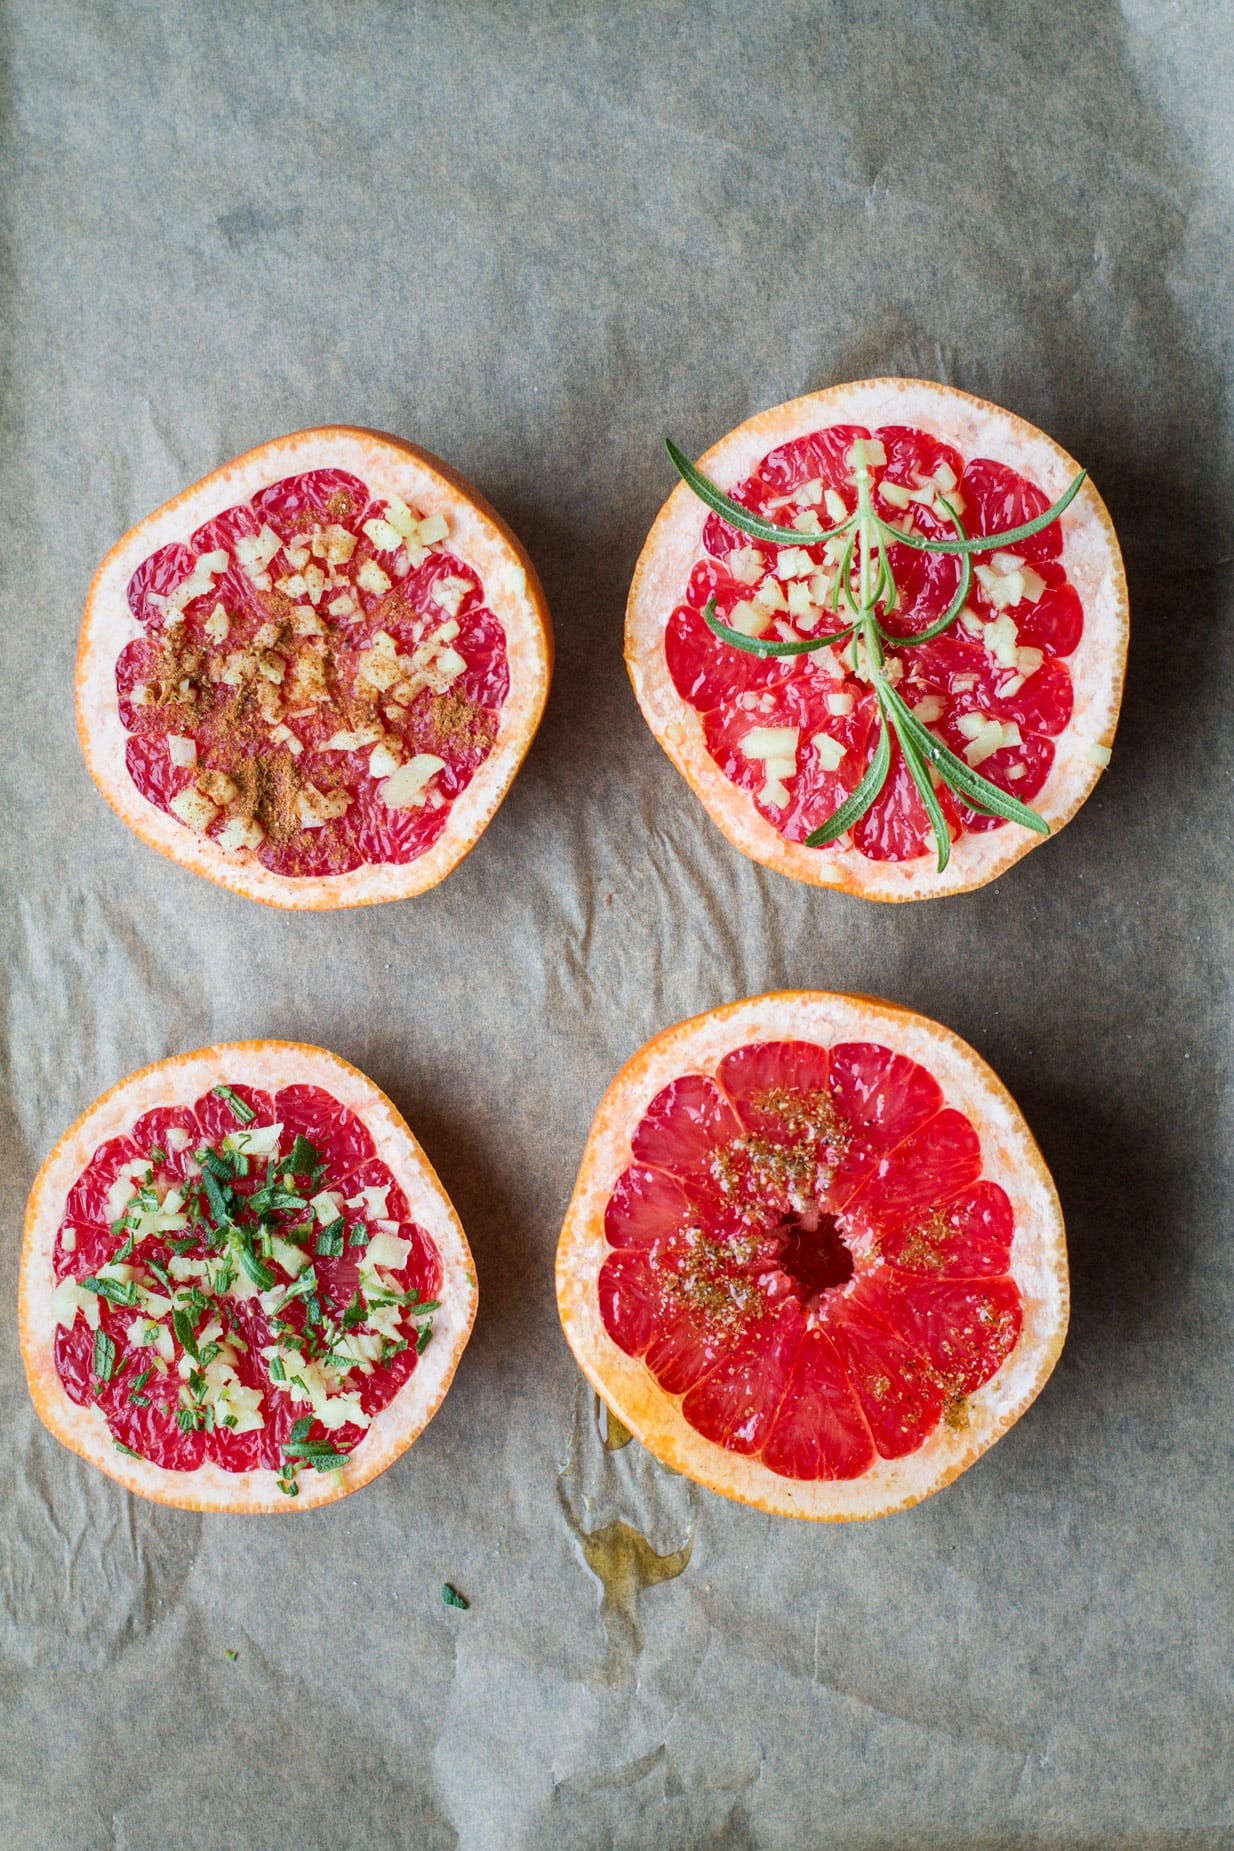 4 unbaked half grapefruits, two with rosemary, one with spice blends and one with a wet honey look